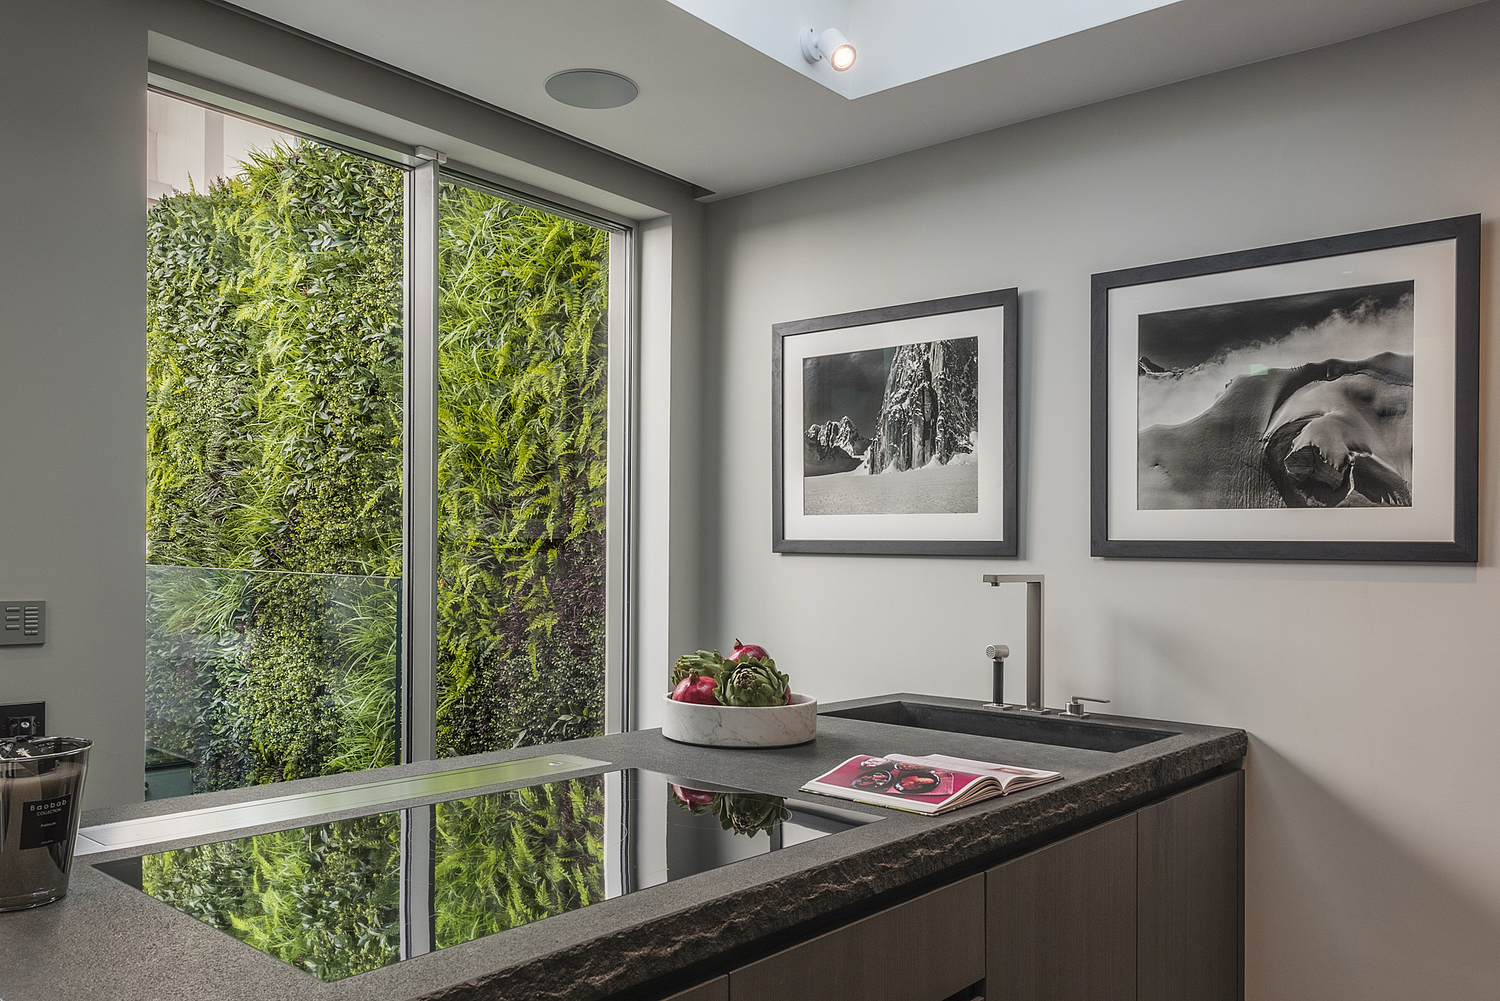 Kitchen detail with view of living wall, London